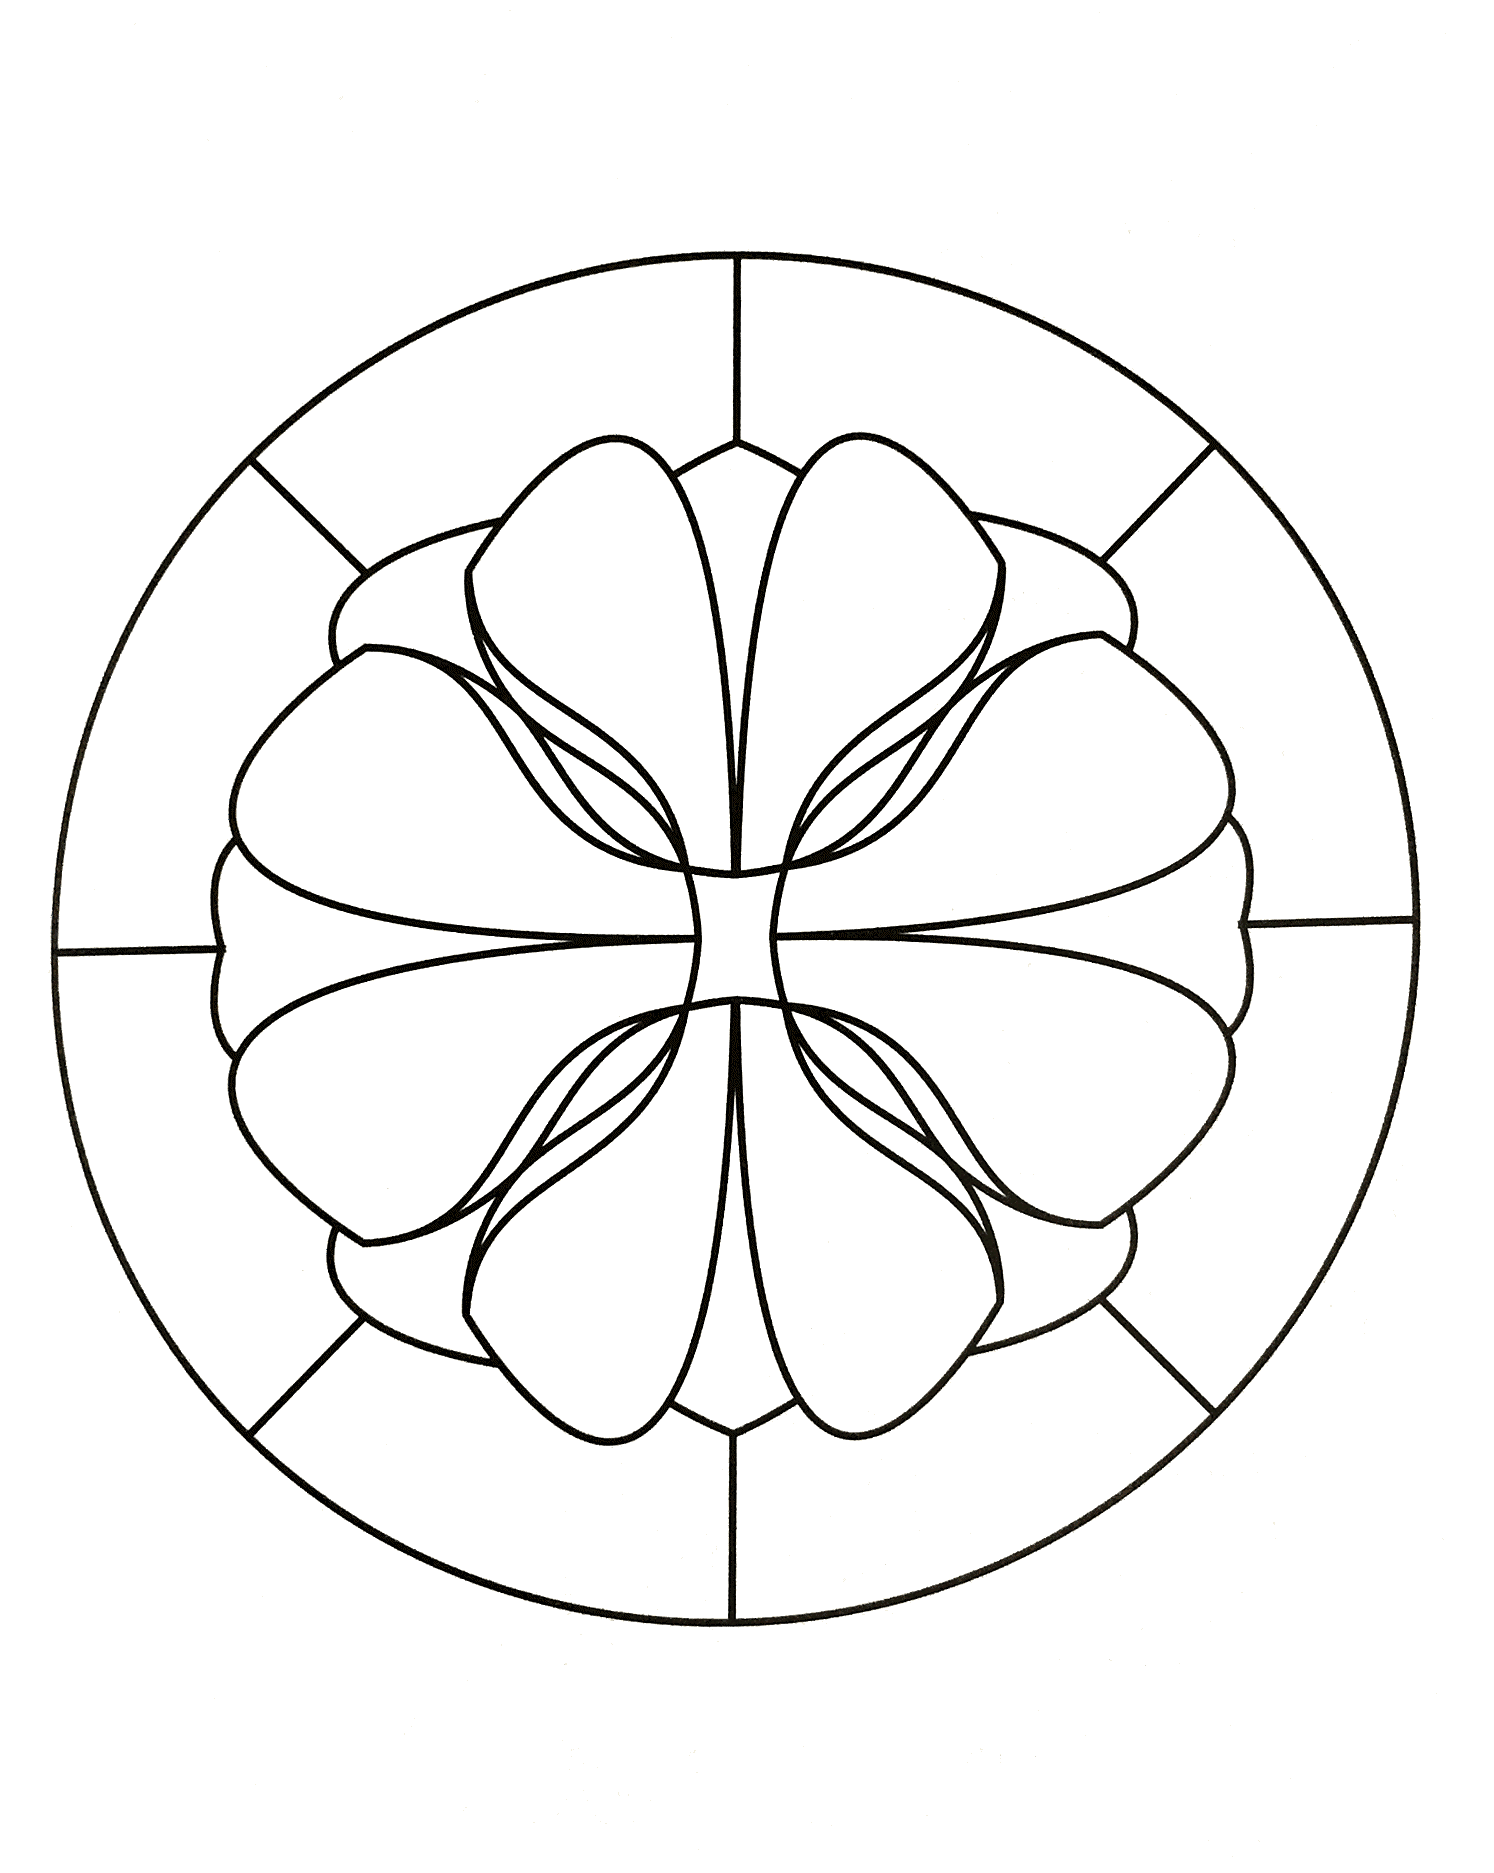 A perfect Mandala if you want easy coloring pages or if you search coloring pages for kids. Coloring helps to develop and strengthen the hand muscles, which later helps children with activities like lifting objects and typing.